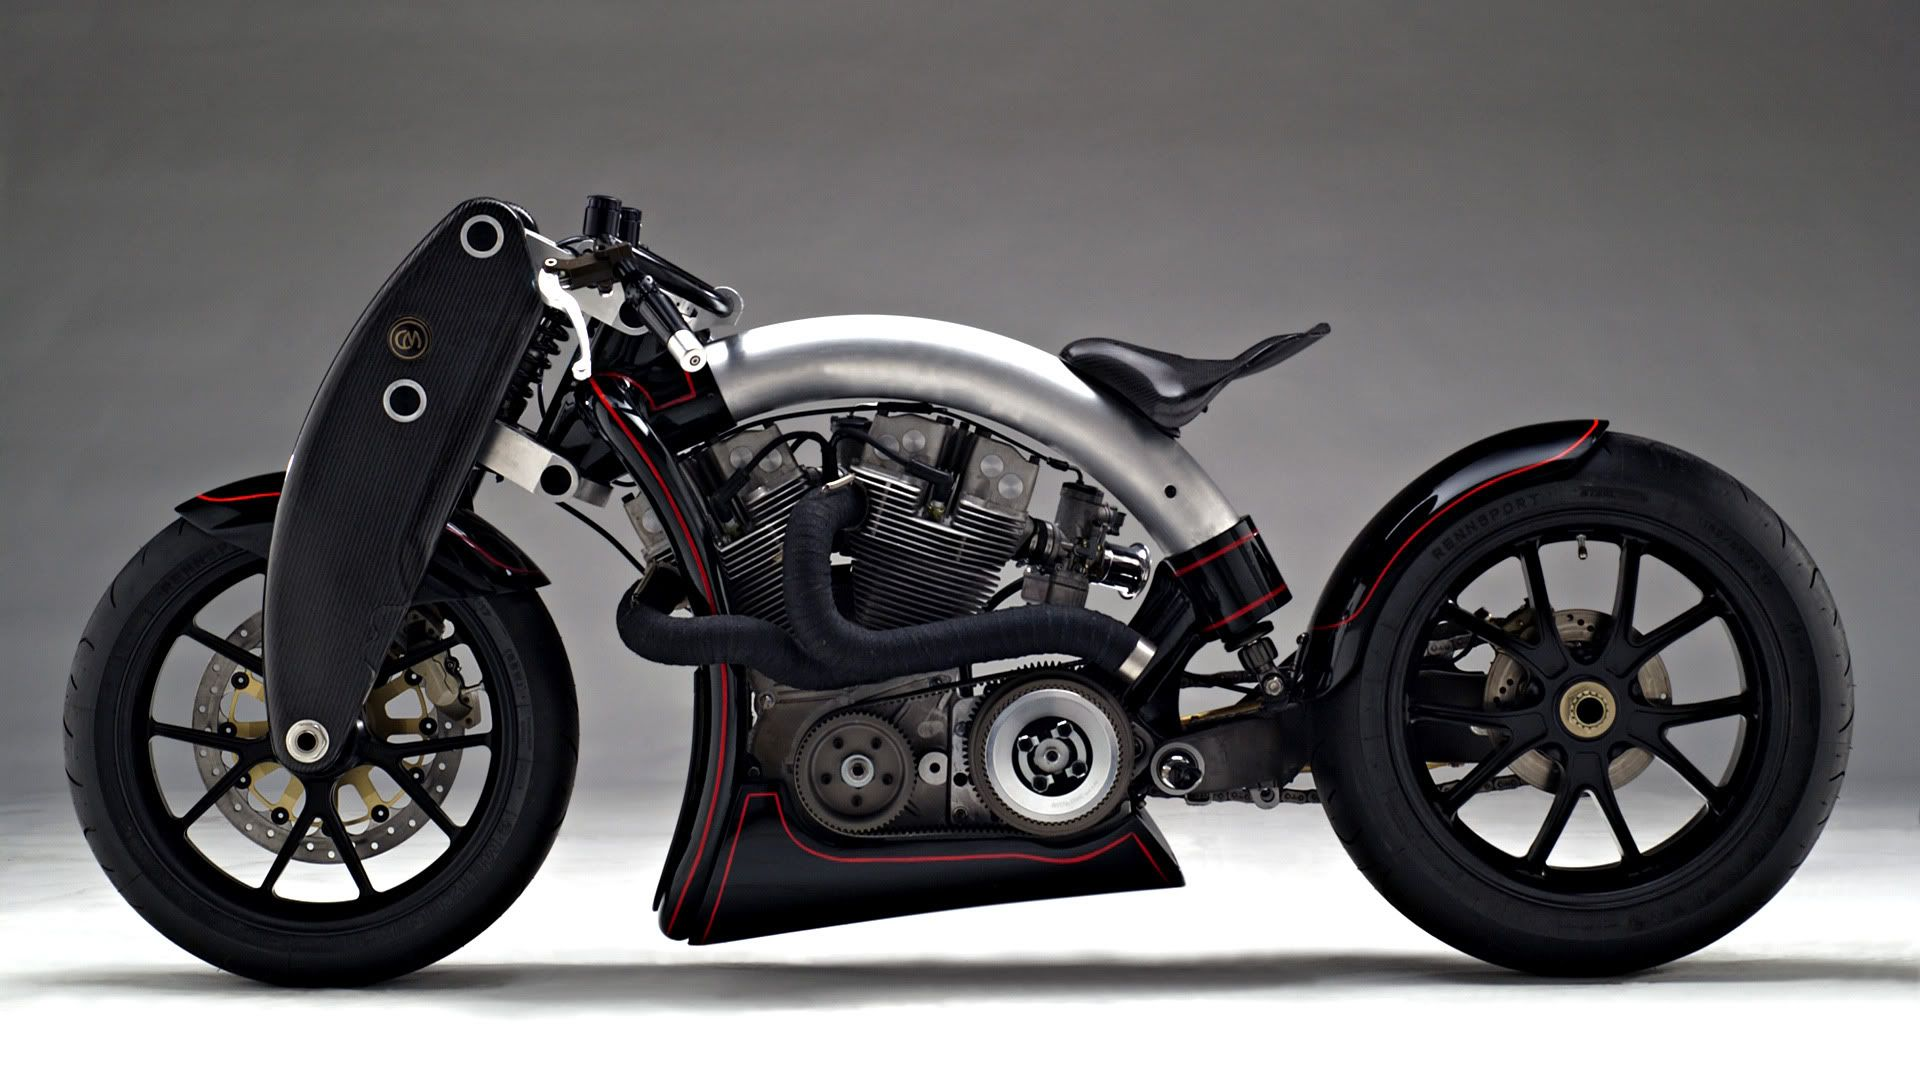 Motor Sports Hd Wallpaper: Confederate Motorcycle On Pinterest